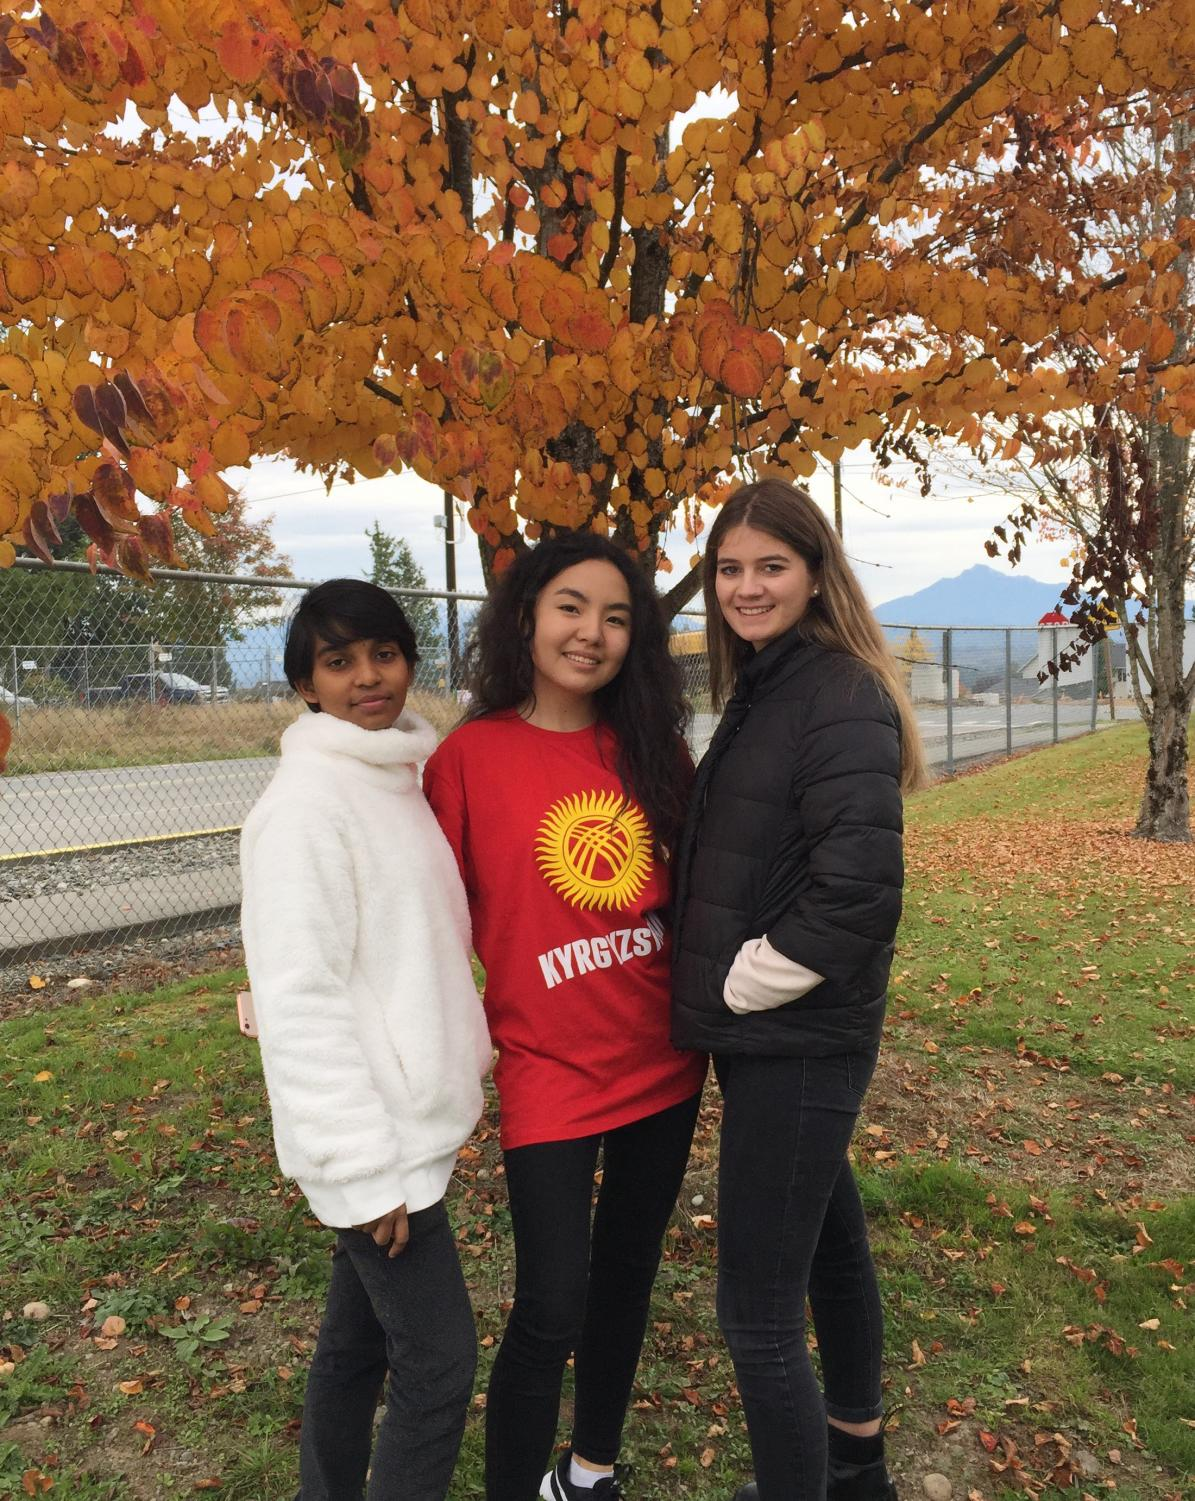 Anshika Patel, Kamila Almaz, and Katherina Huber are all exchange students who are excited to start their year at LSHS.